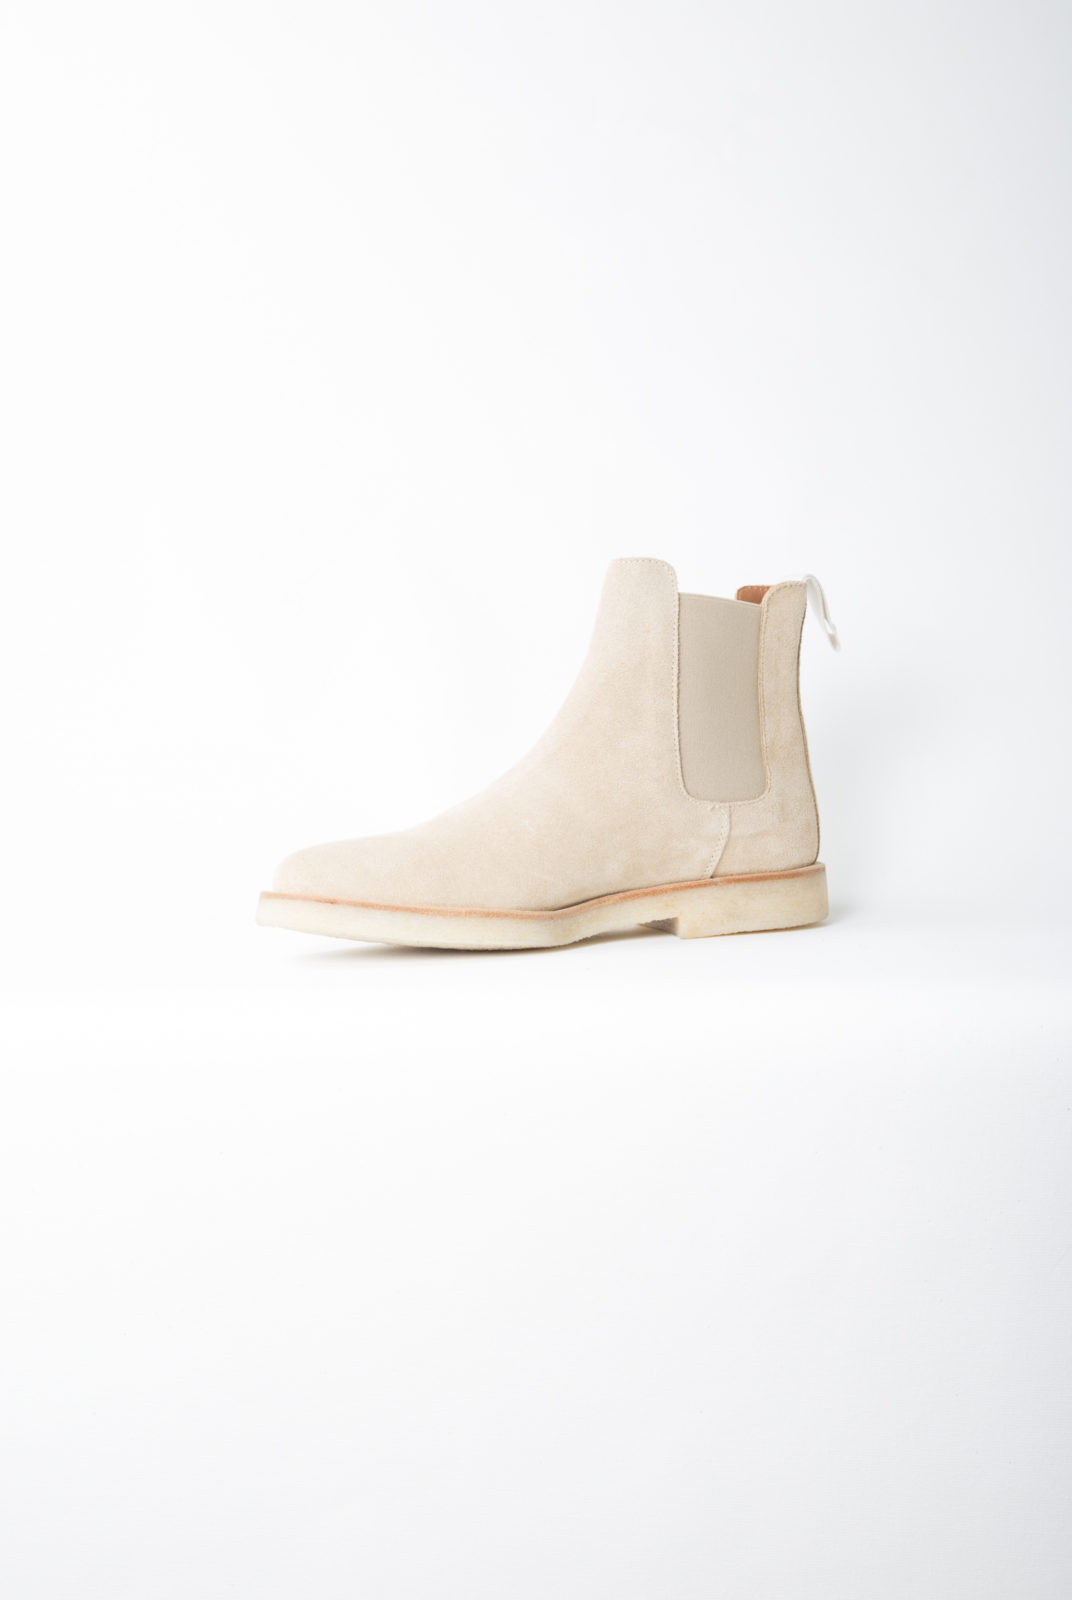 chelsea boots, taupe, détails élastique, common projects